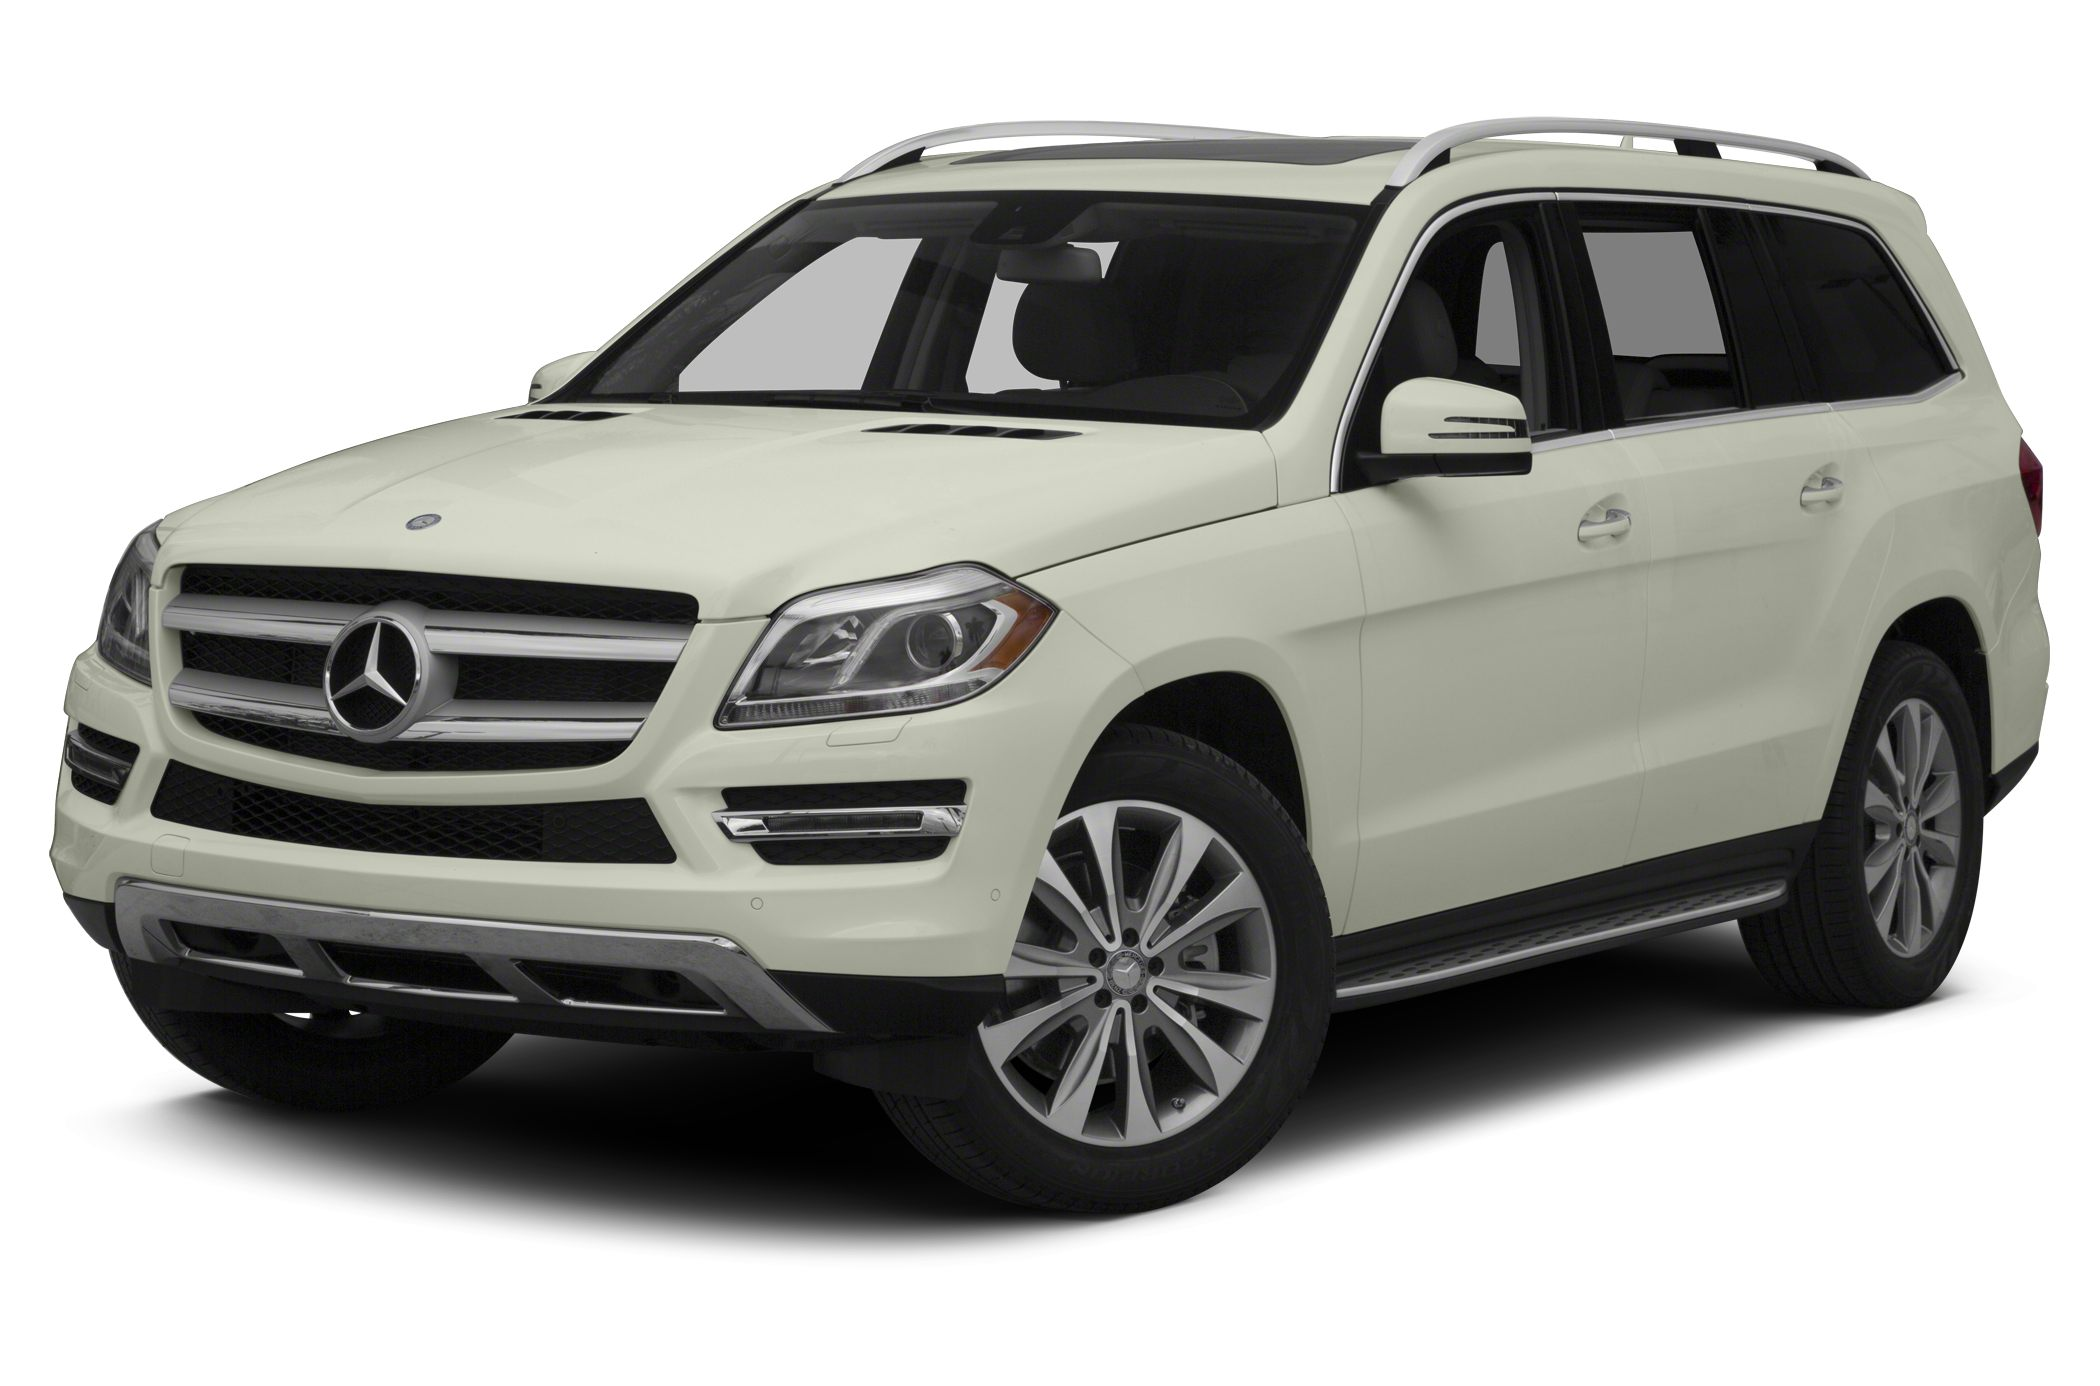 USC30MBS111A021001 Interesting Info About 2013 Mercedes Gl450 for Sale